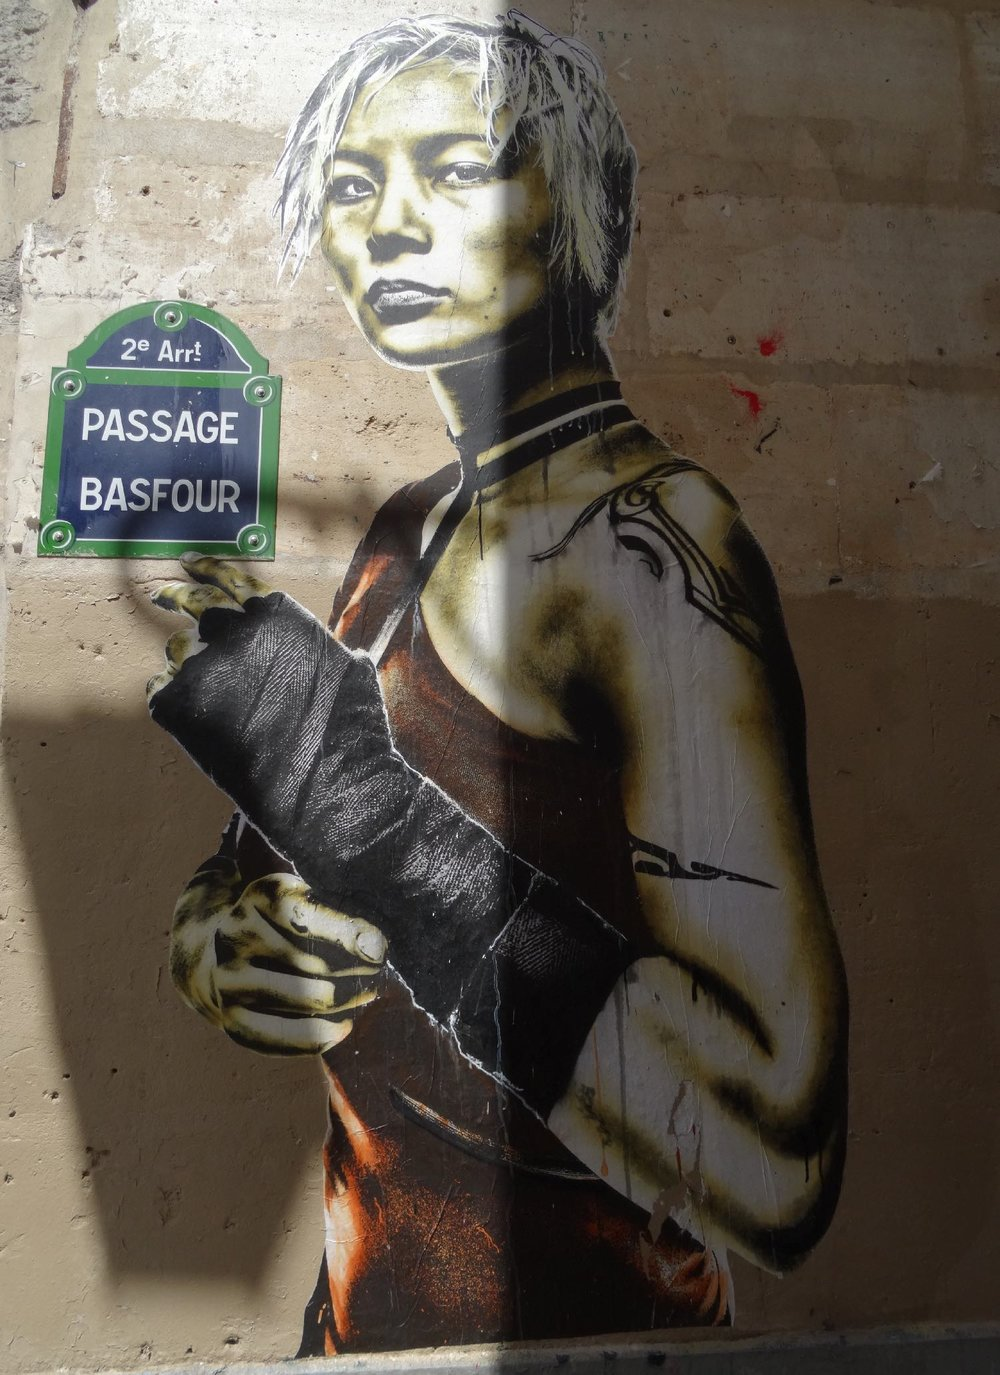 Eddie Colla artist | Salvage portrait |Portrait of bandaged and masked woman | Paris | ©sandrine cohen